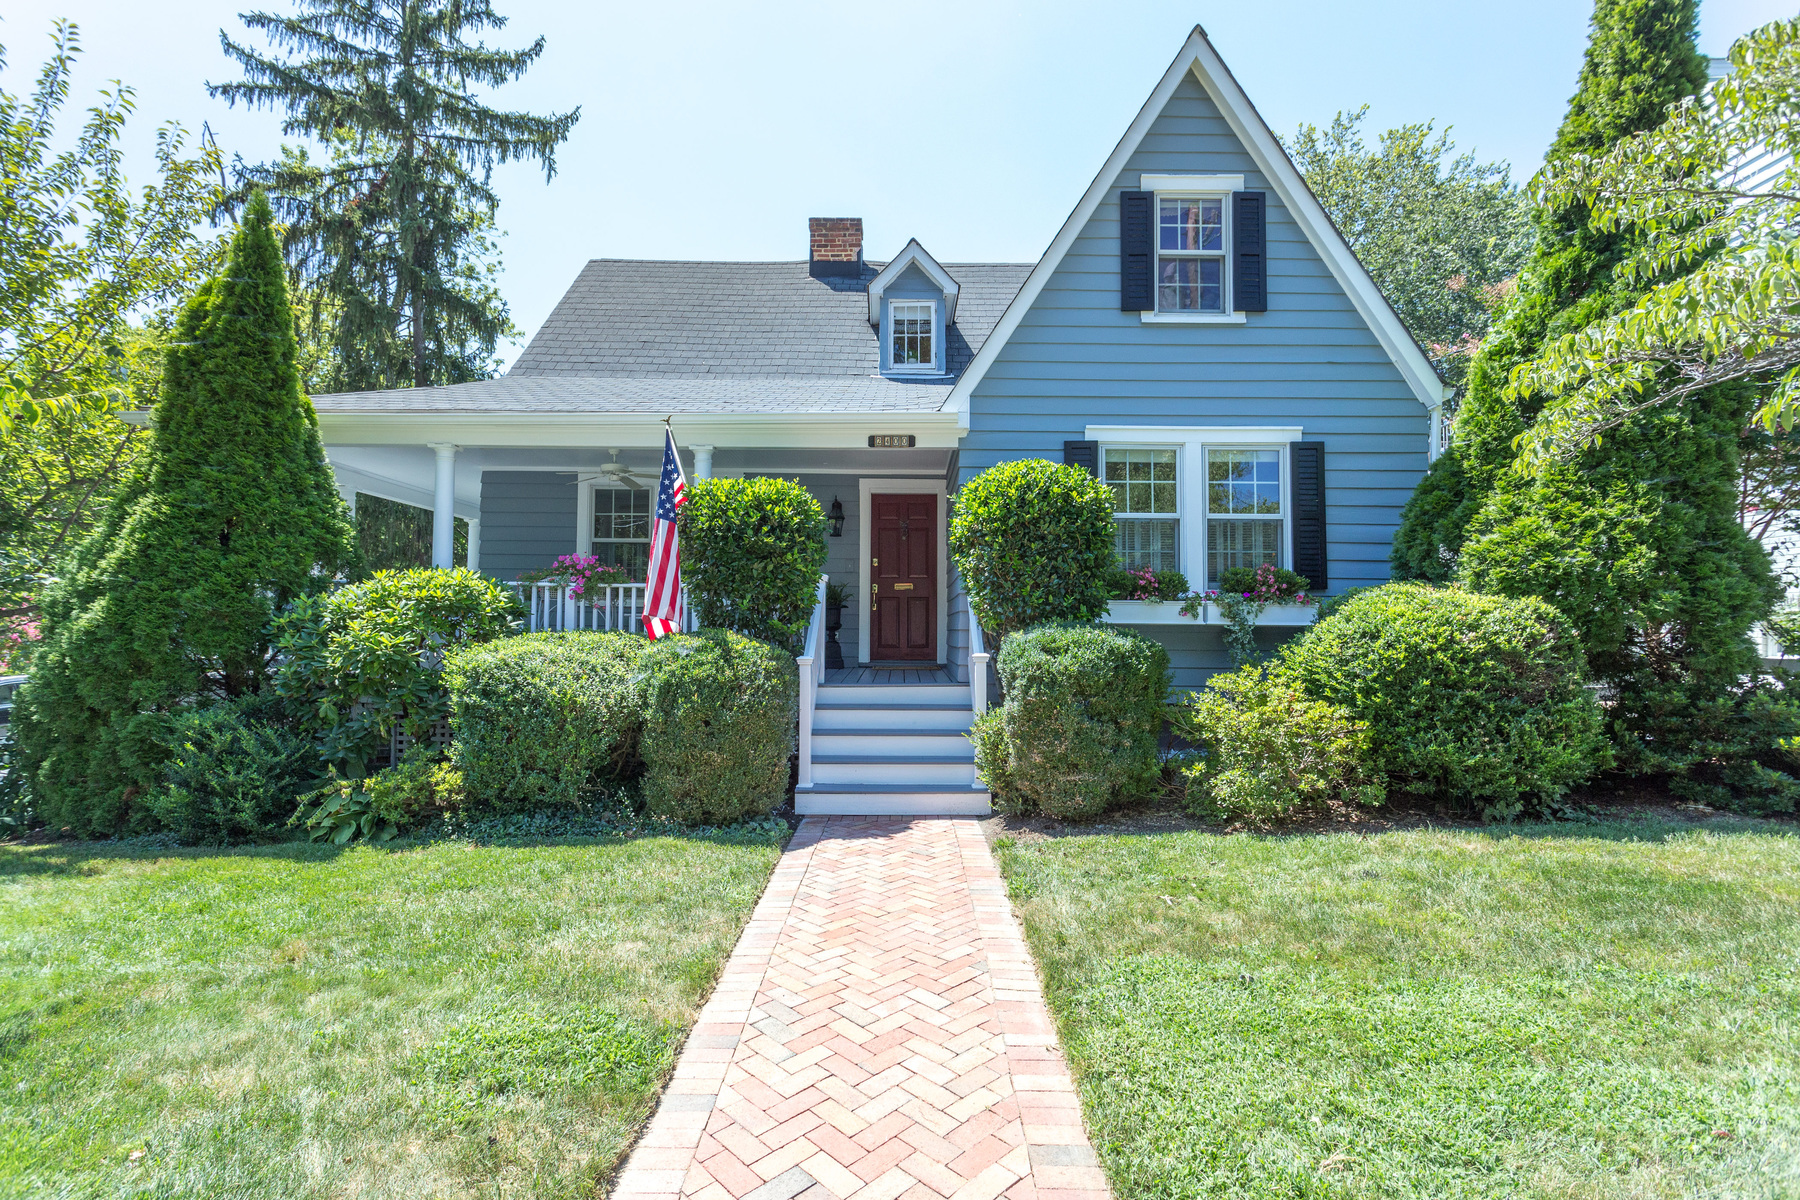 Single Family Home for Sale at 2400 Cameron Mills Road, Alexandria 2400 Cameron Mills Rd Alexandria, Virginia 22302 United States